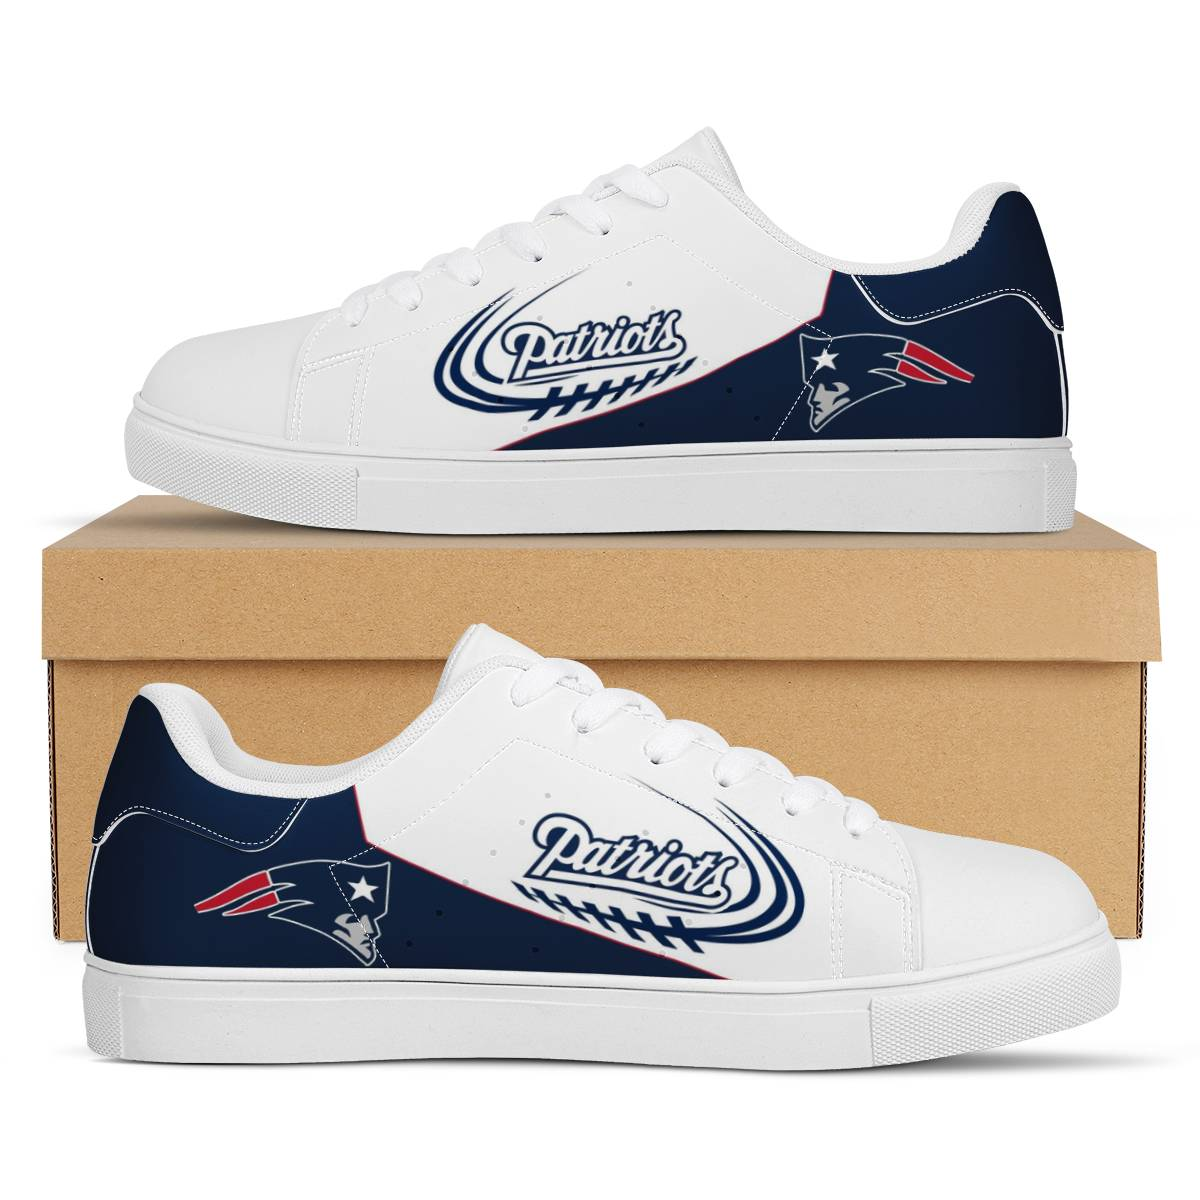 Men's New England Patriots Low Top Leather Sneakers 003